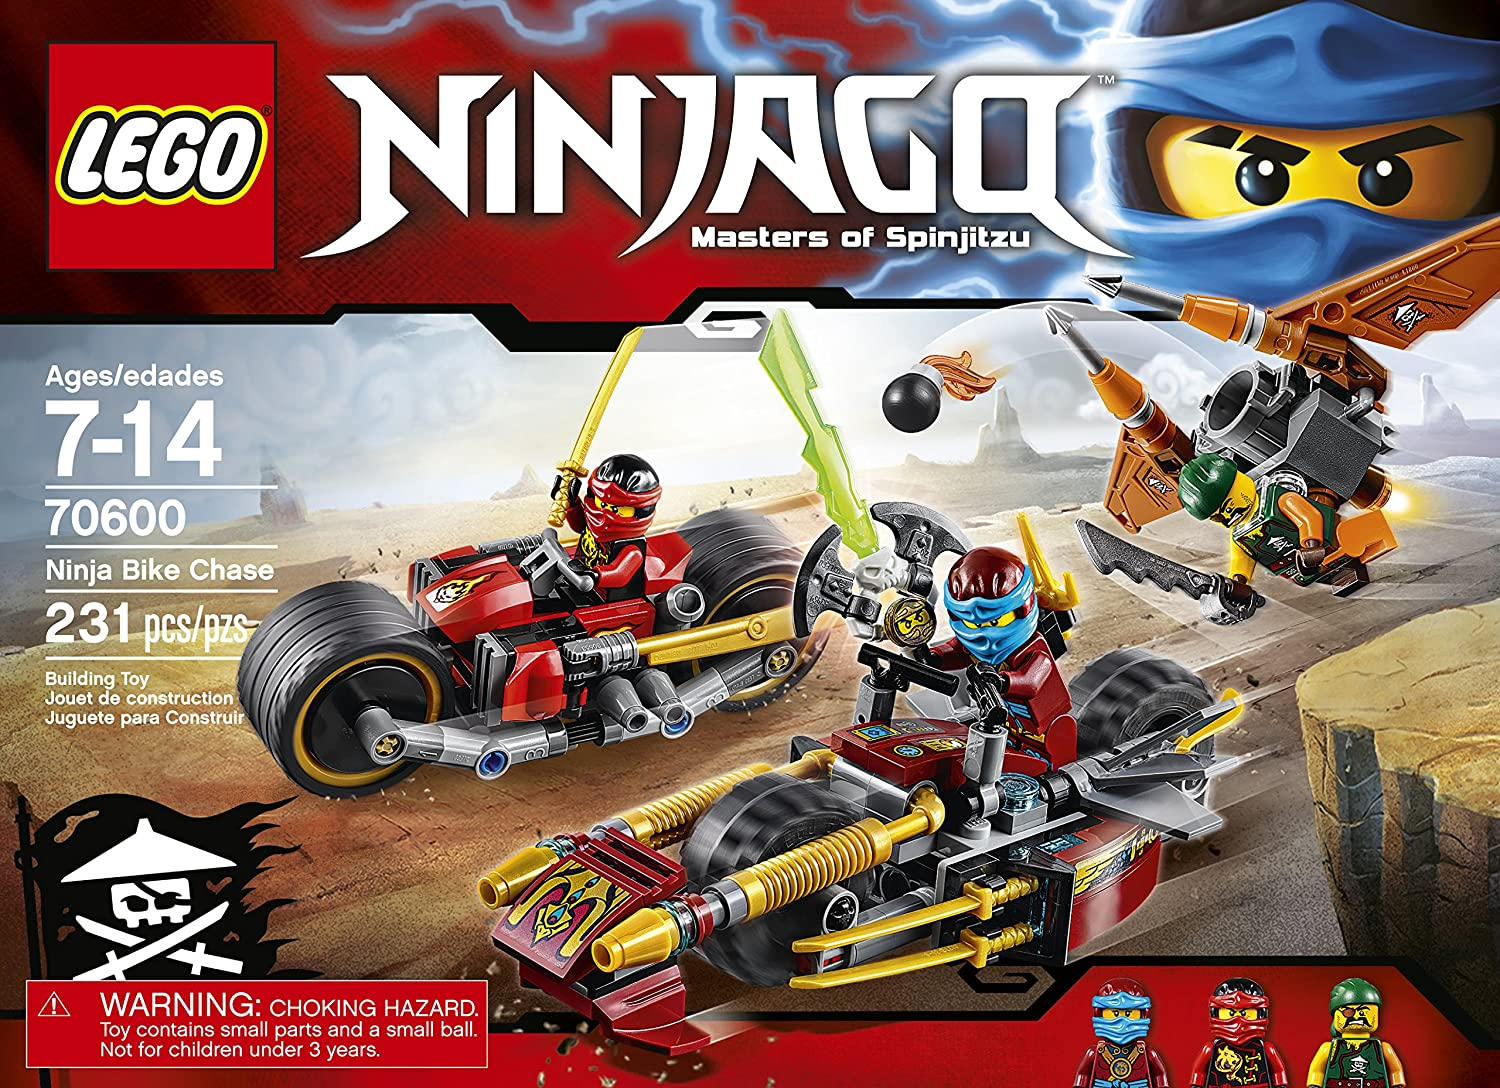 LEGO Ninjago Ninja Bike Chase 70600 by LEGO: Amazon.es ...